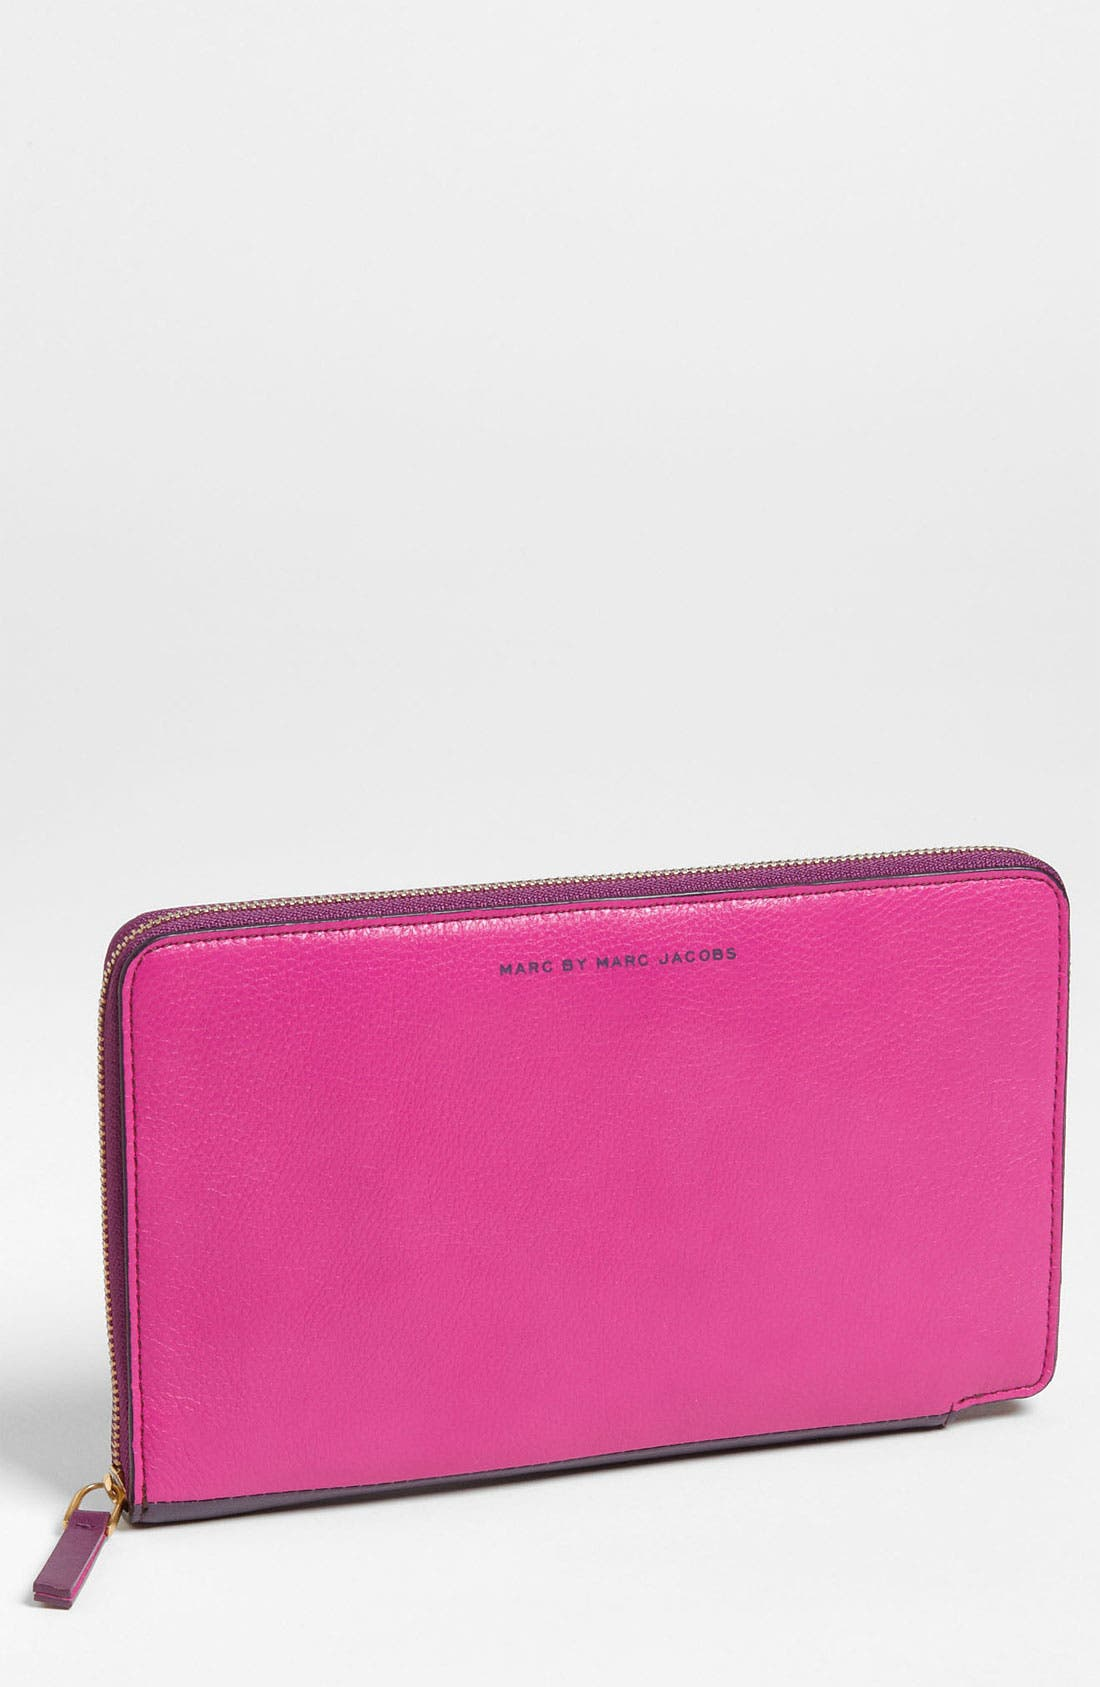 Main Image - MARC BY MARC JACOBS 'Sophisticato' Travel Wallet